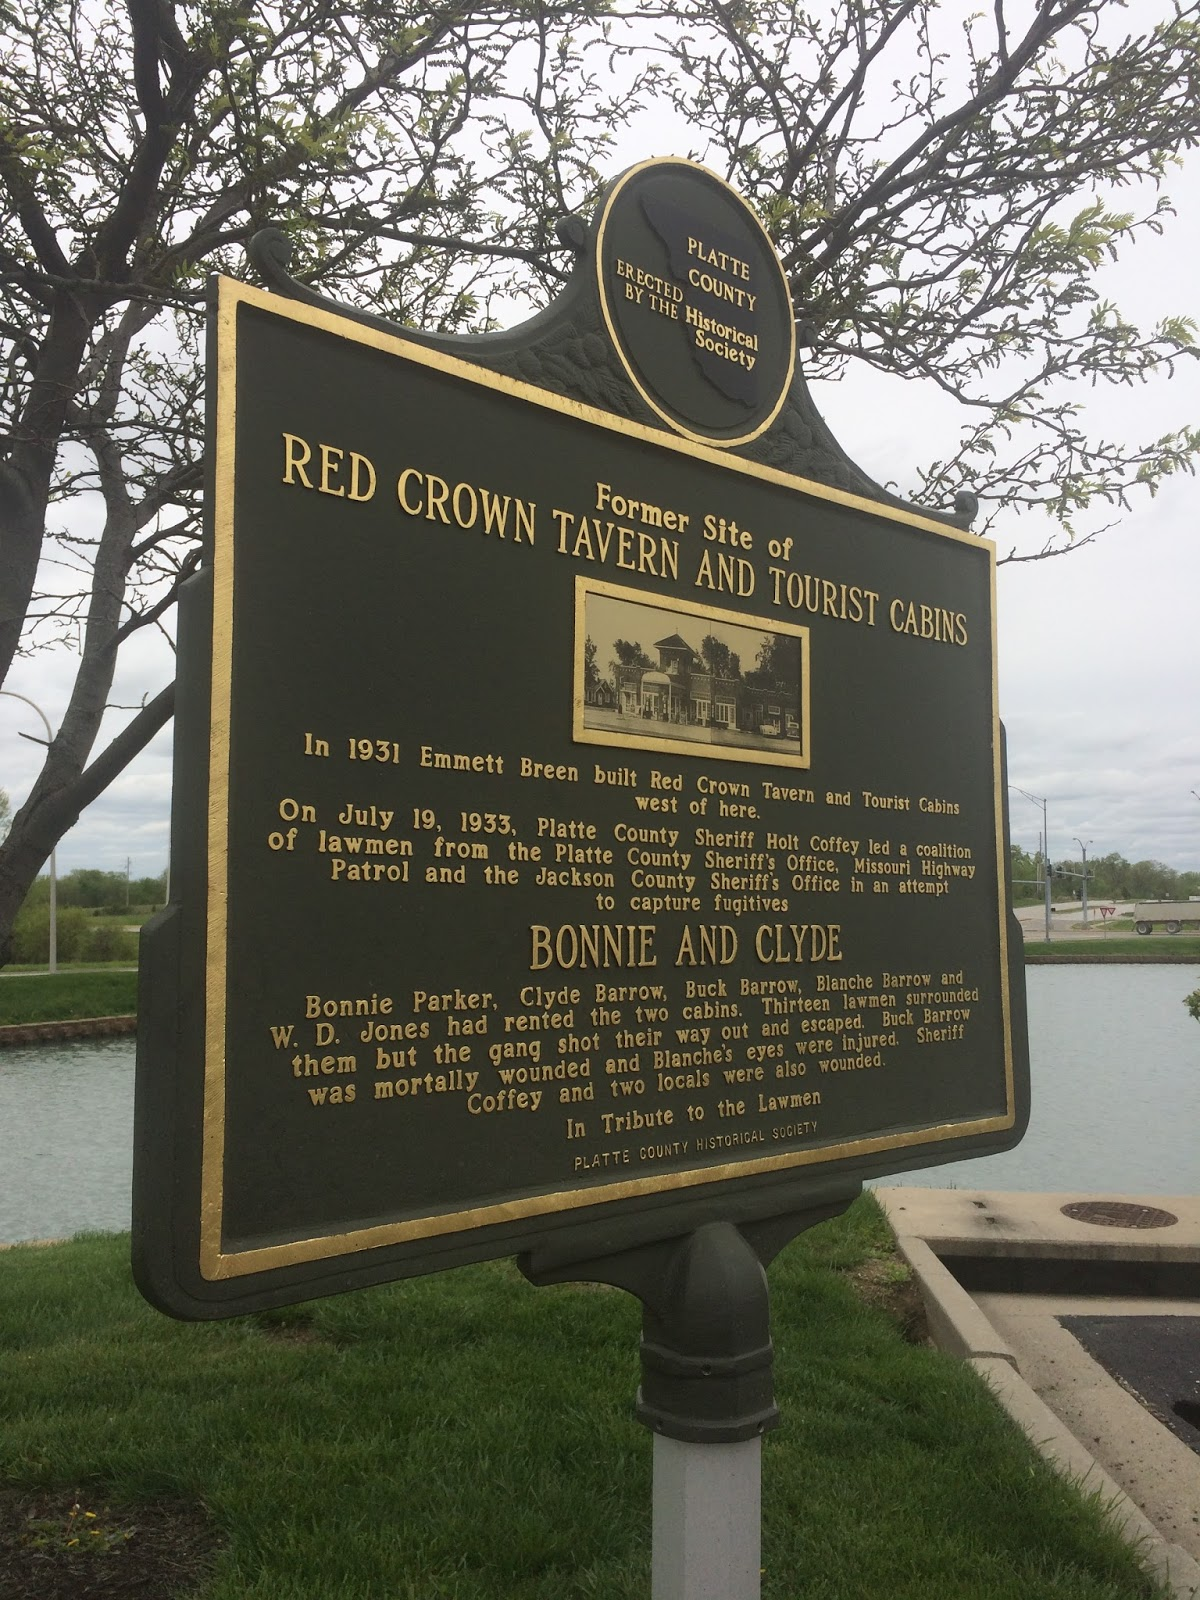 Bonnie and Clyde Hide-out Shoot Out, The Red Crown Tavern and Red ...